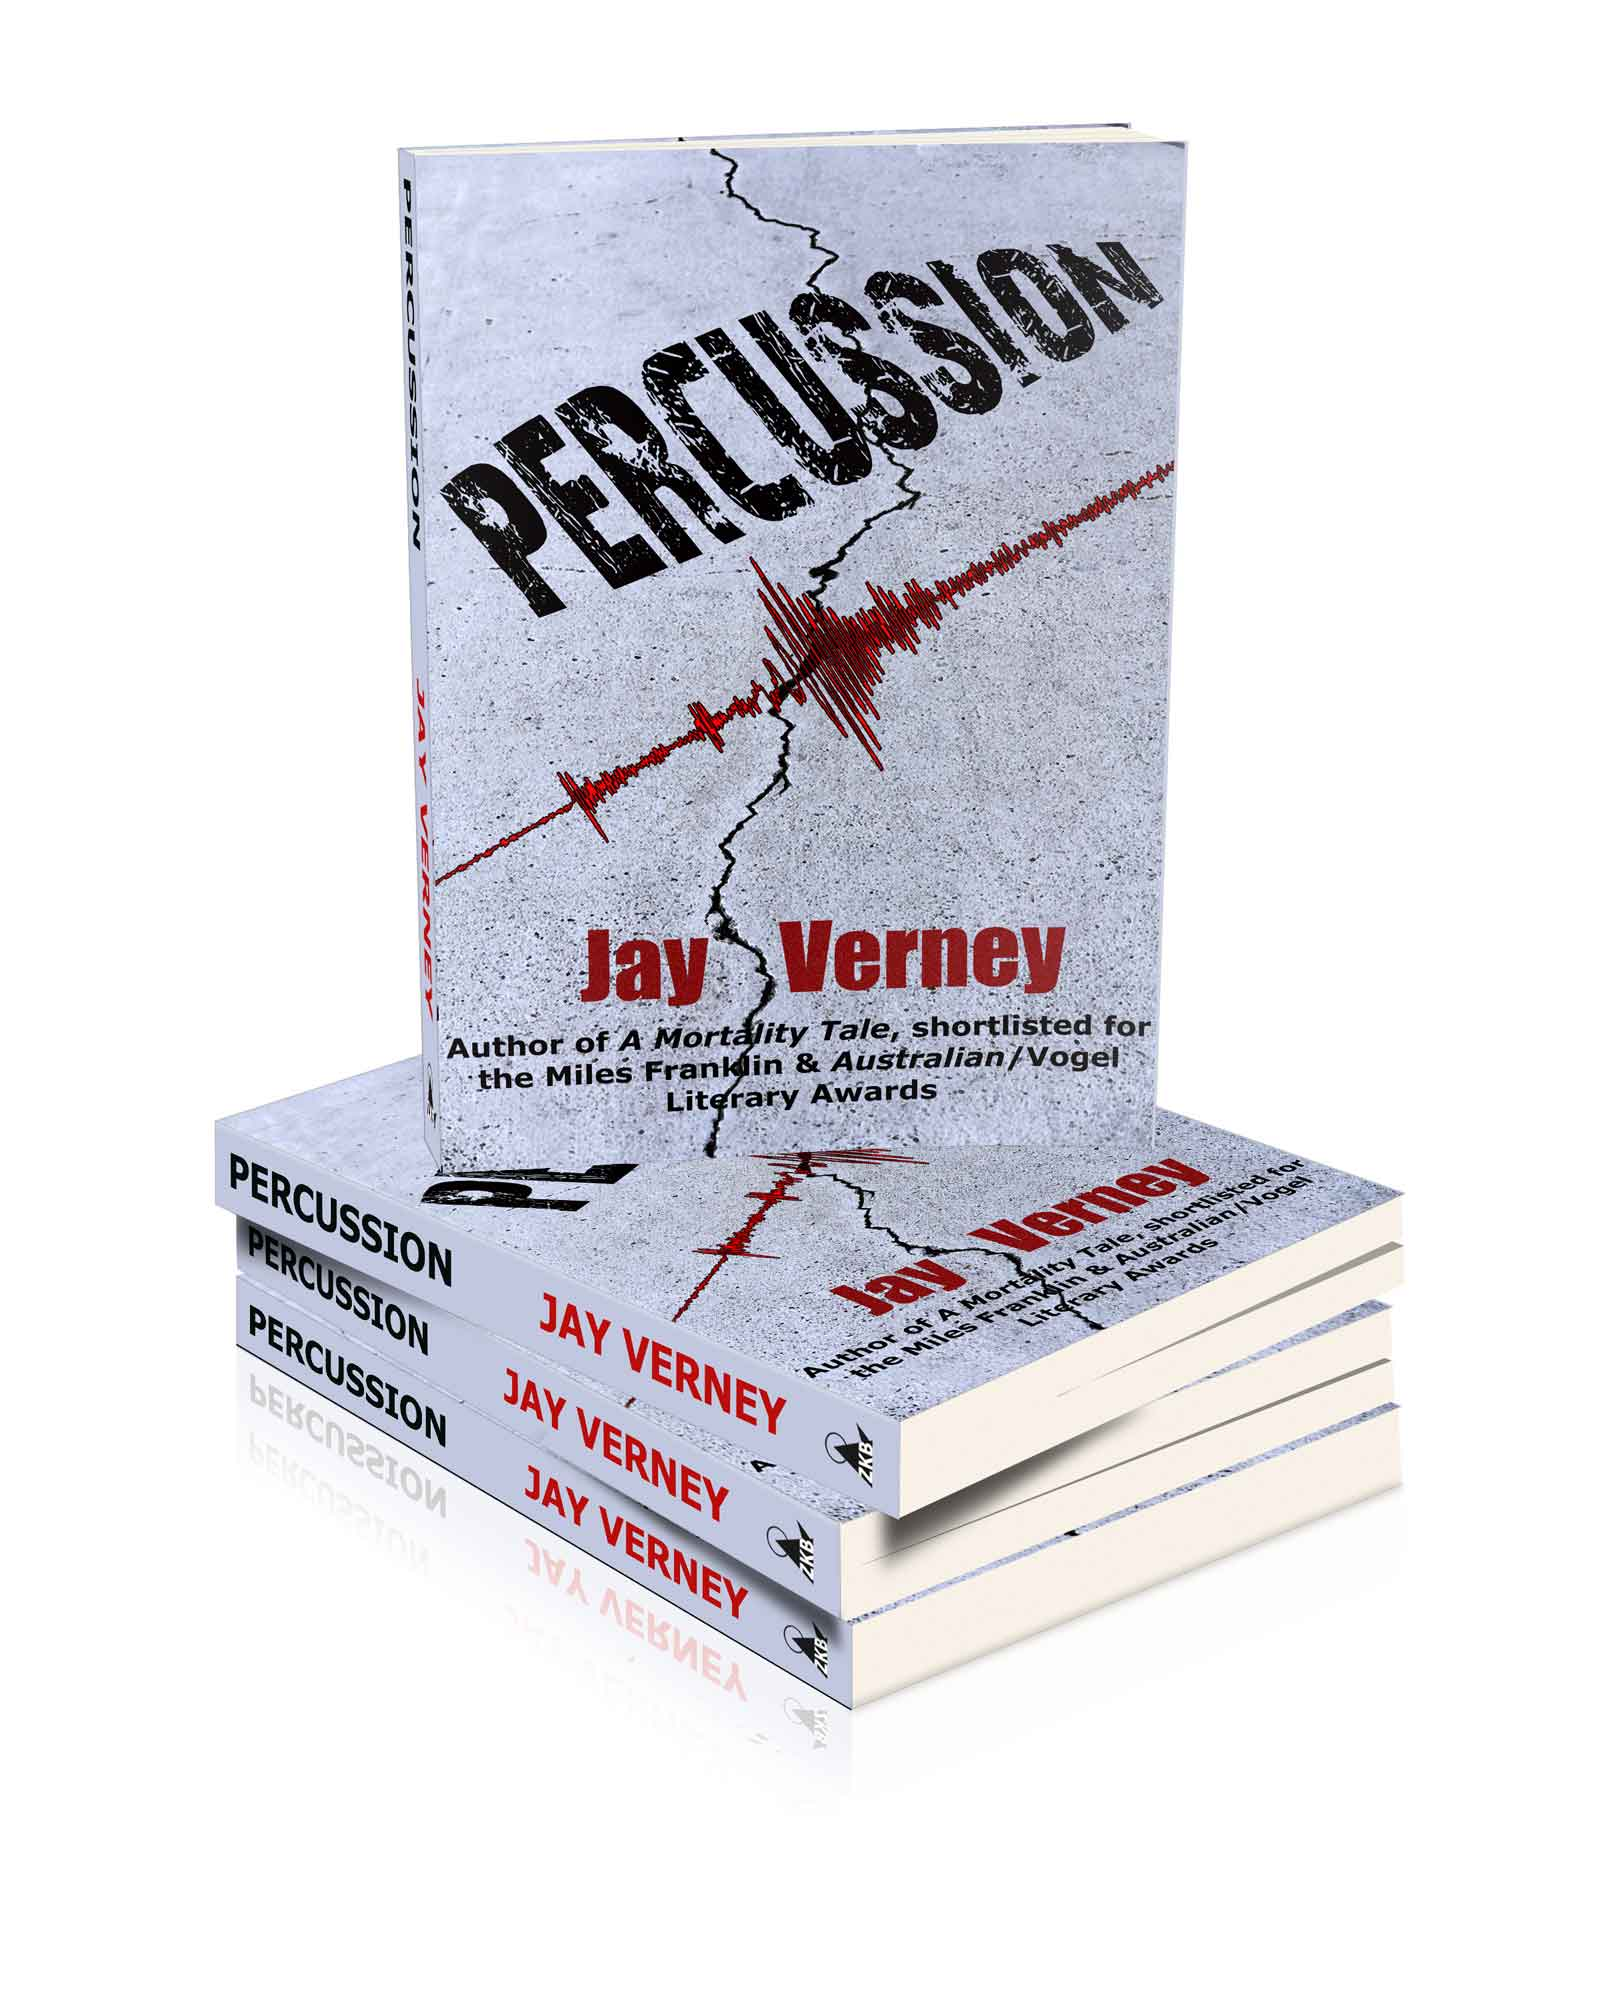 Percussion book cover